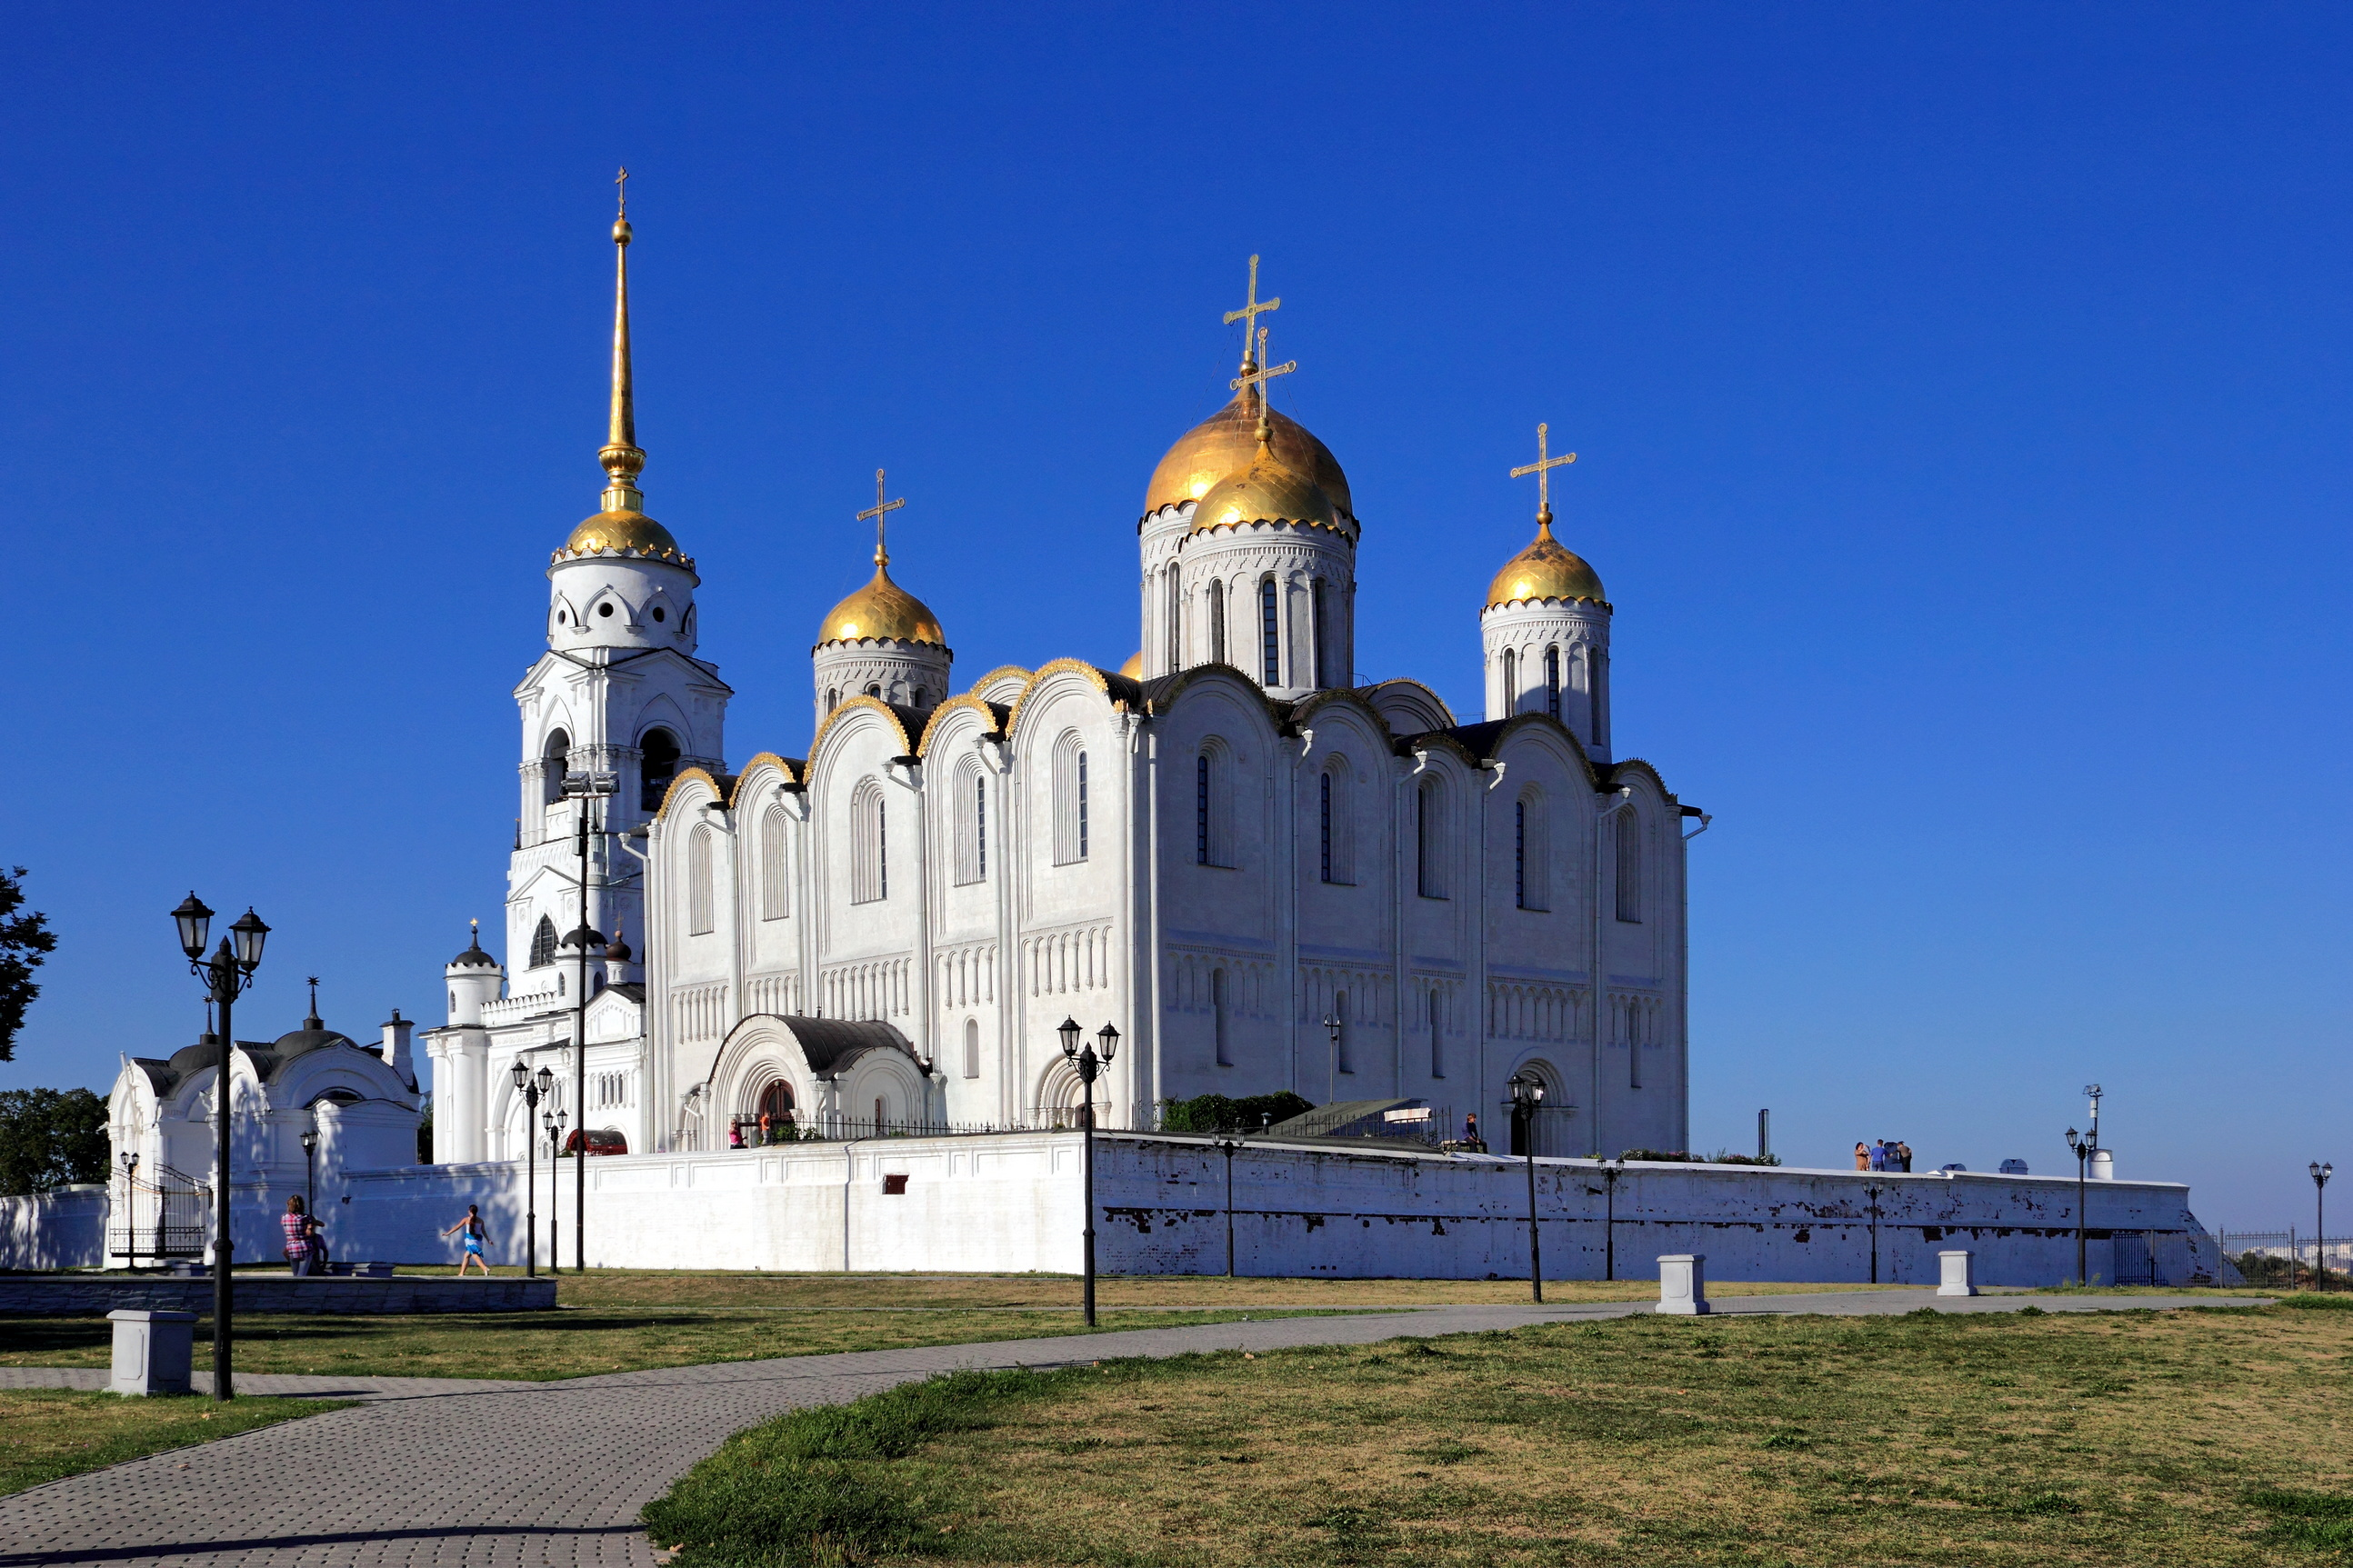 Владимир (Vladimir), Russia - Golden Ring Russia small tour 5 days from Moscow. Small group car tour by Monterrasol Travel.